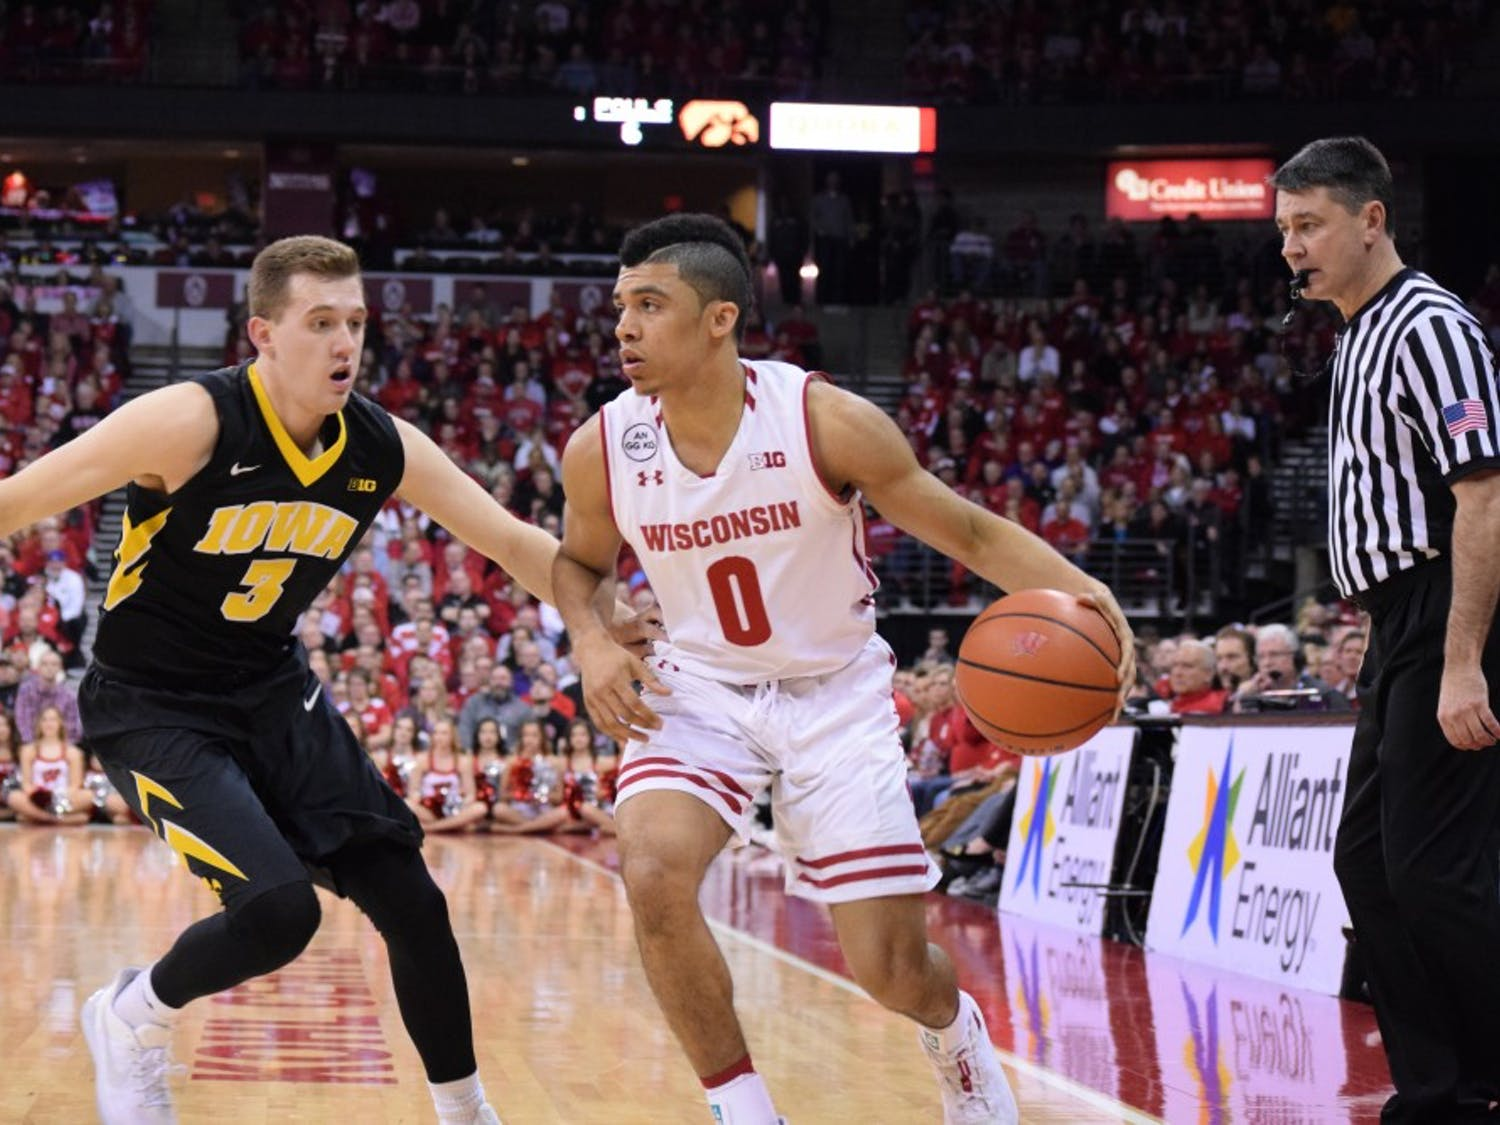 Wisconsin point guard D'mitrik Trice went scoreless in his only career game against Nebraska, but he's a dramatically different player than he was in that contest two seasons ago.